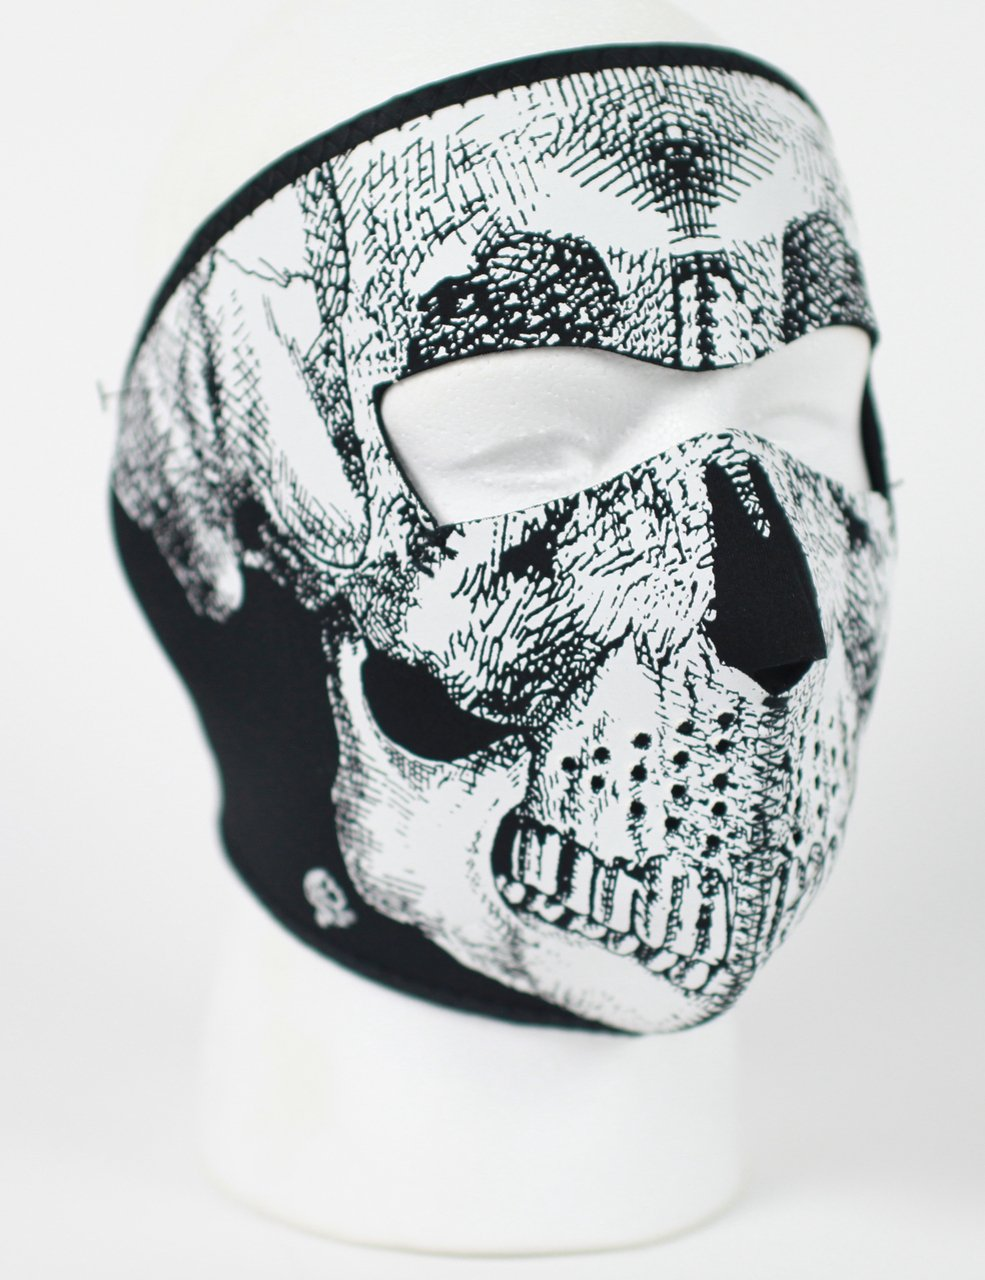 Black and White Skull Neoprene Full Face Mask - SKU FMA10-WNFM002-HI